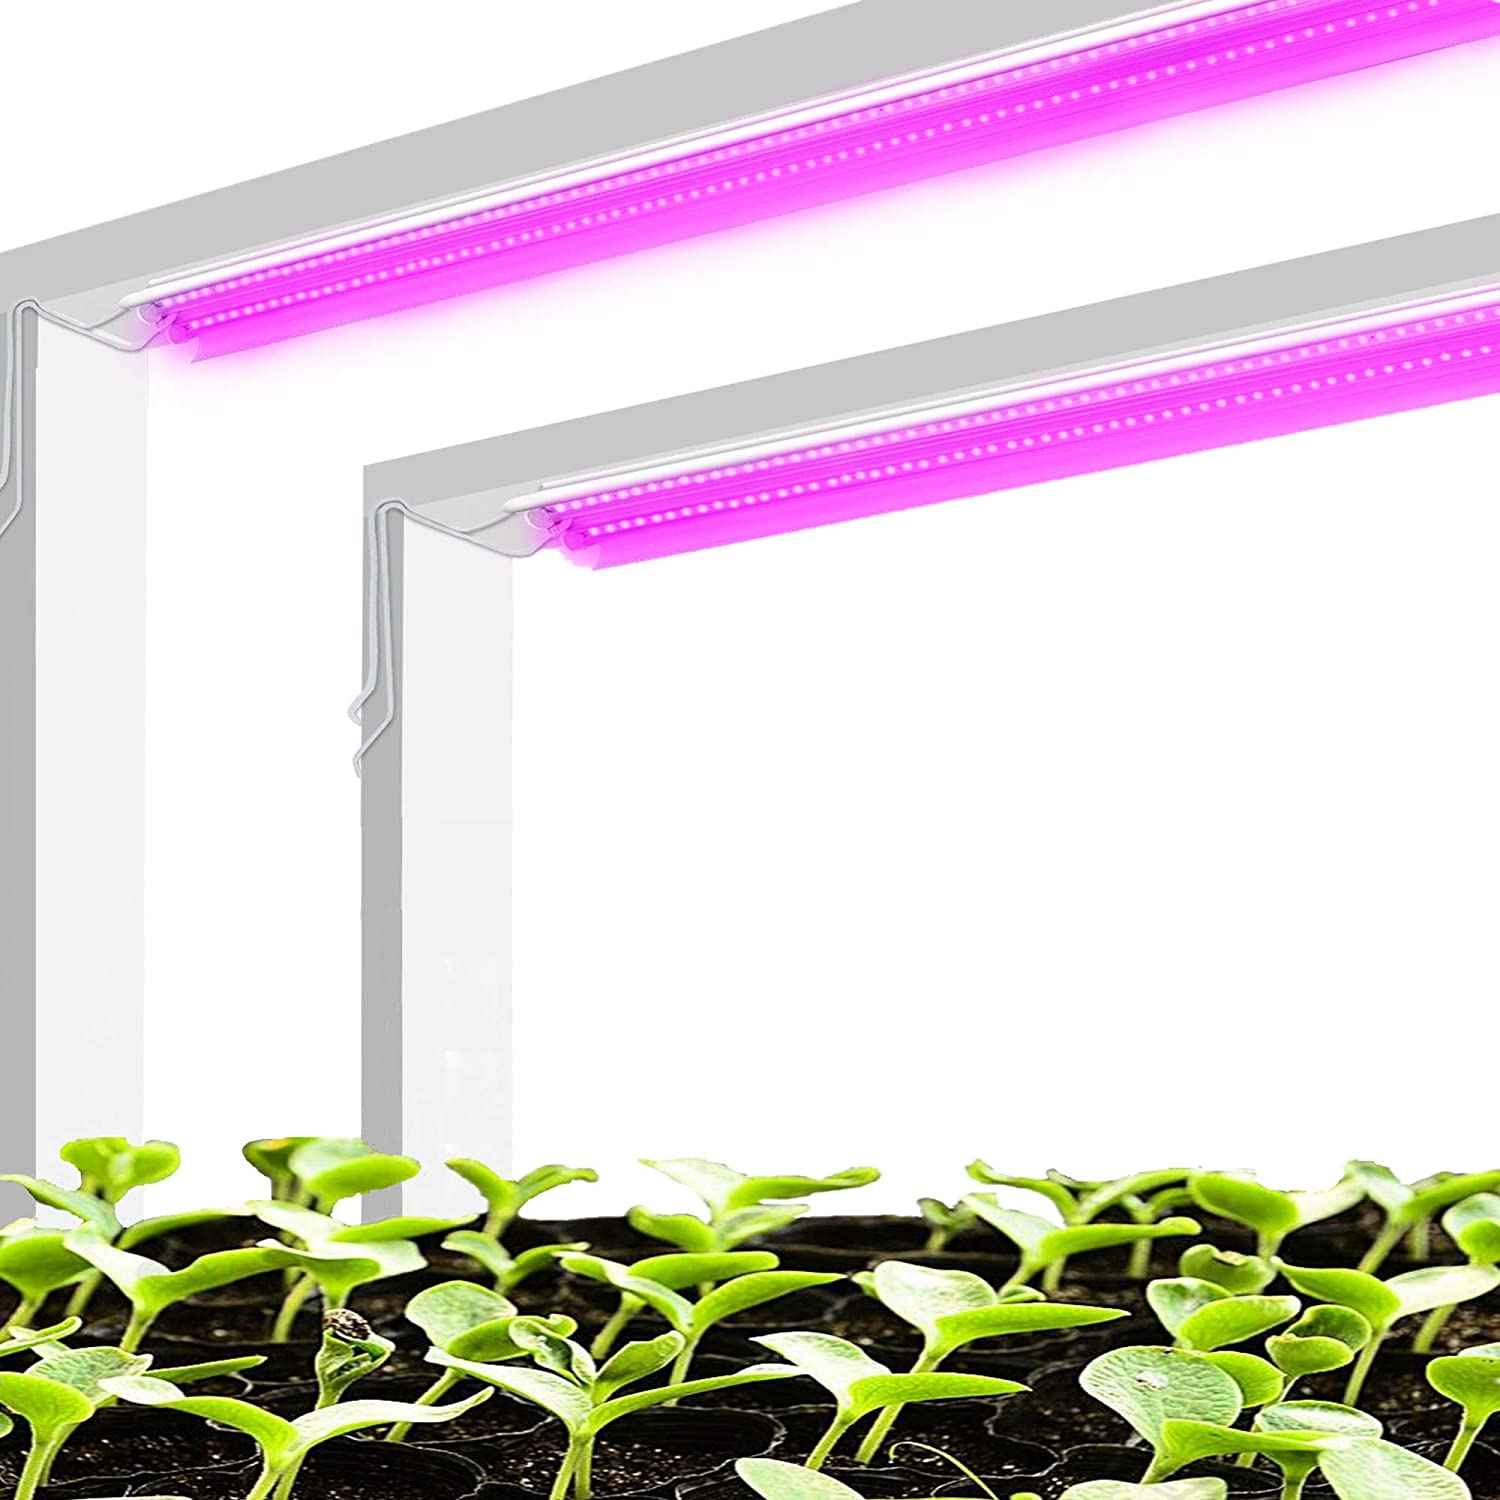 Hanger Chain Included Pack of 2-4FT LED Grow Light Fixture with Reflector Combo Full Sepcturem T5 Growing Plant Lamp for Greenhouse Hydroponic Indoor Seedling Veg and Flower 120W 2 x 60W